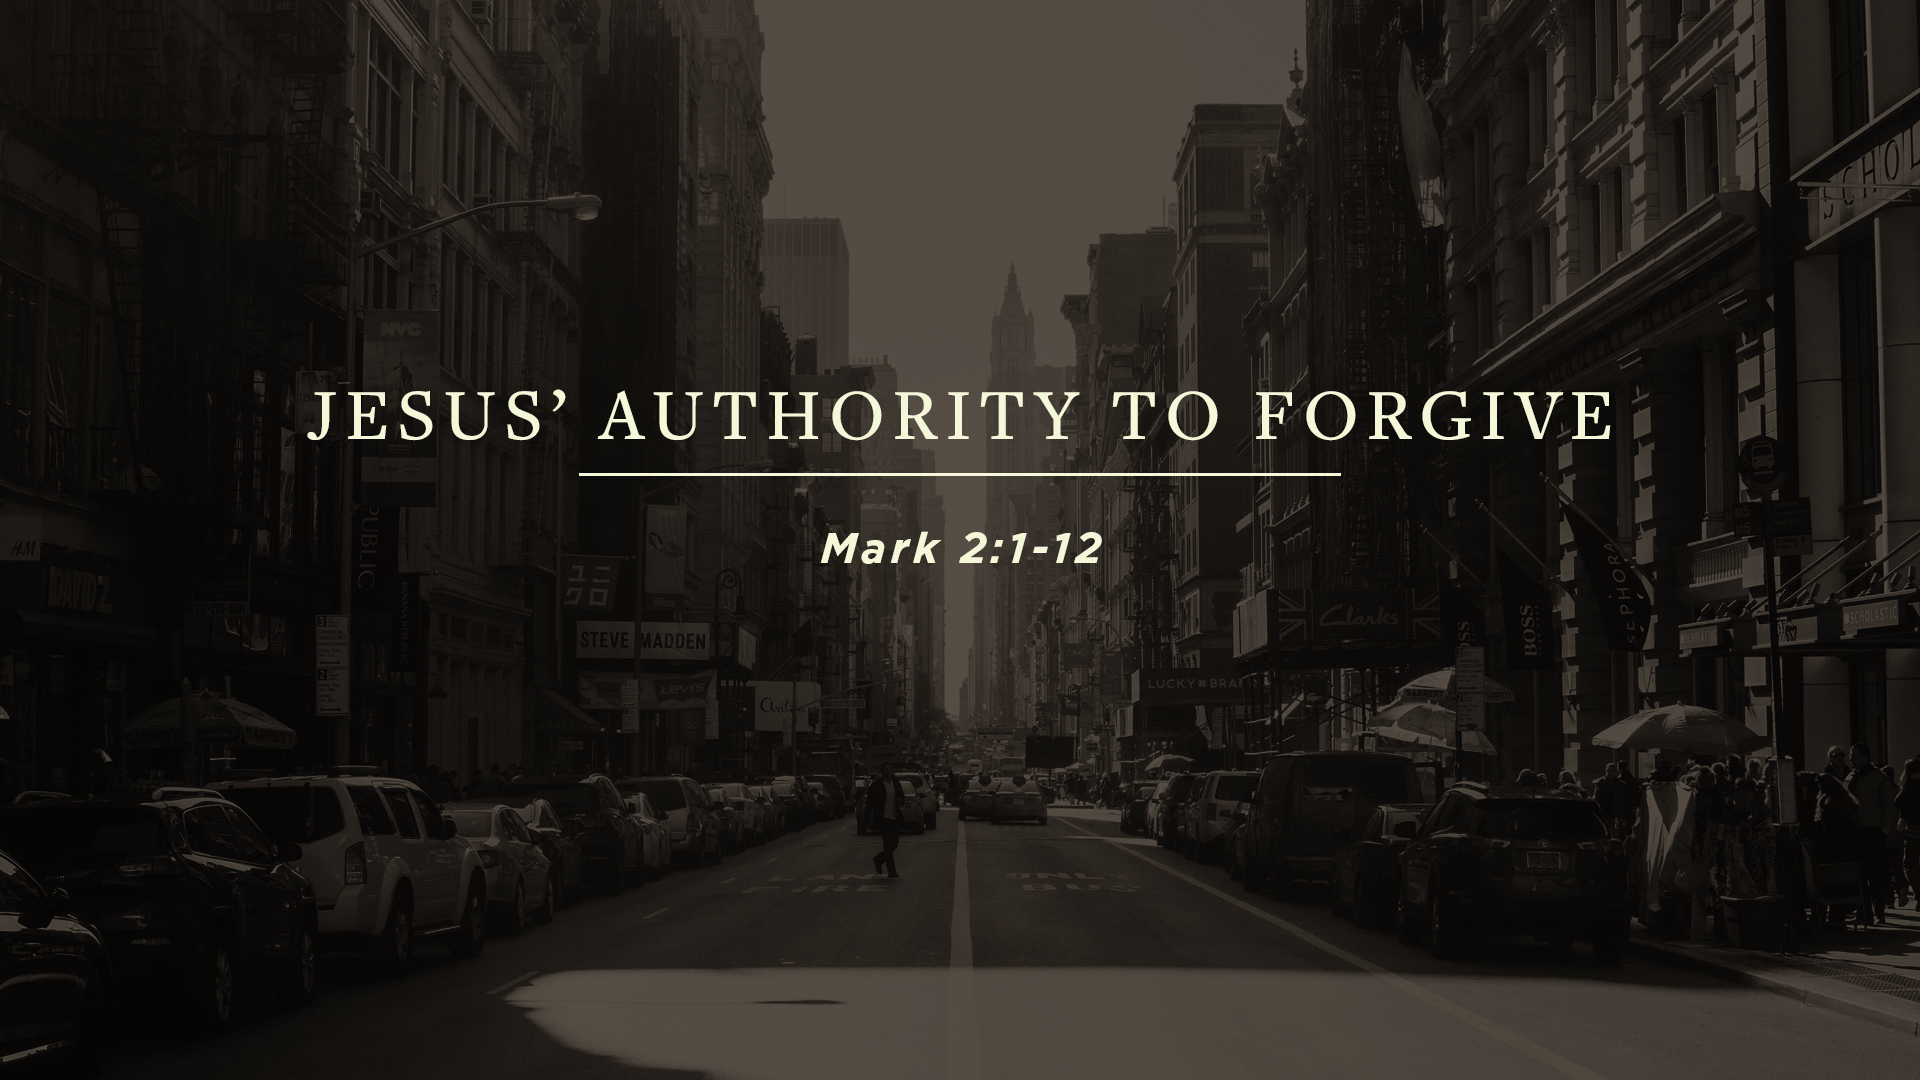 Jesus' Authority to Forgive